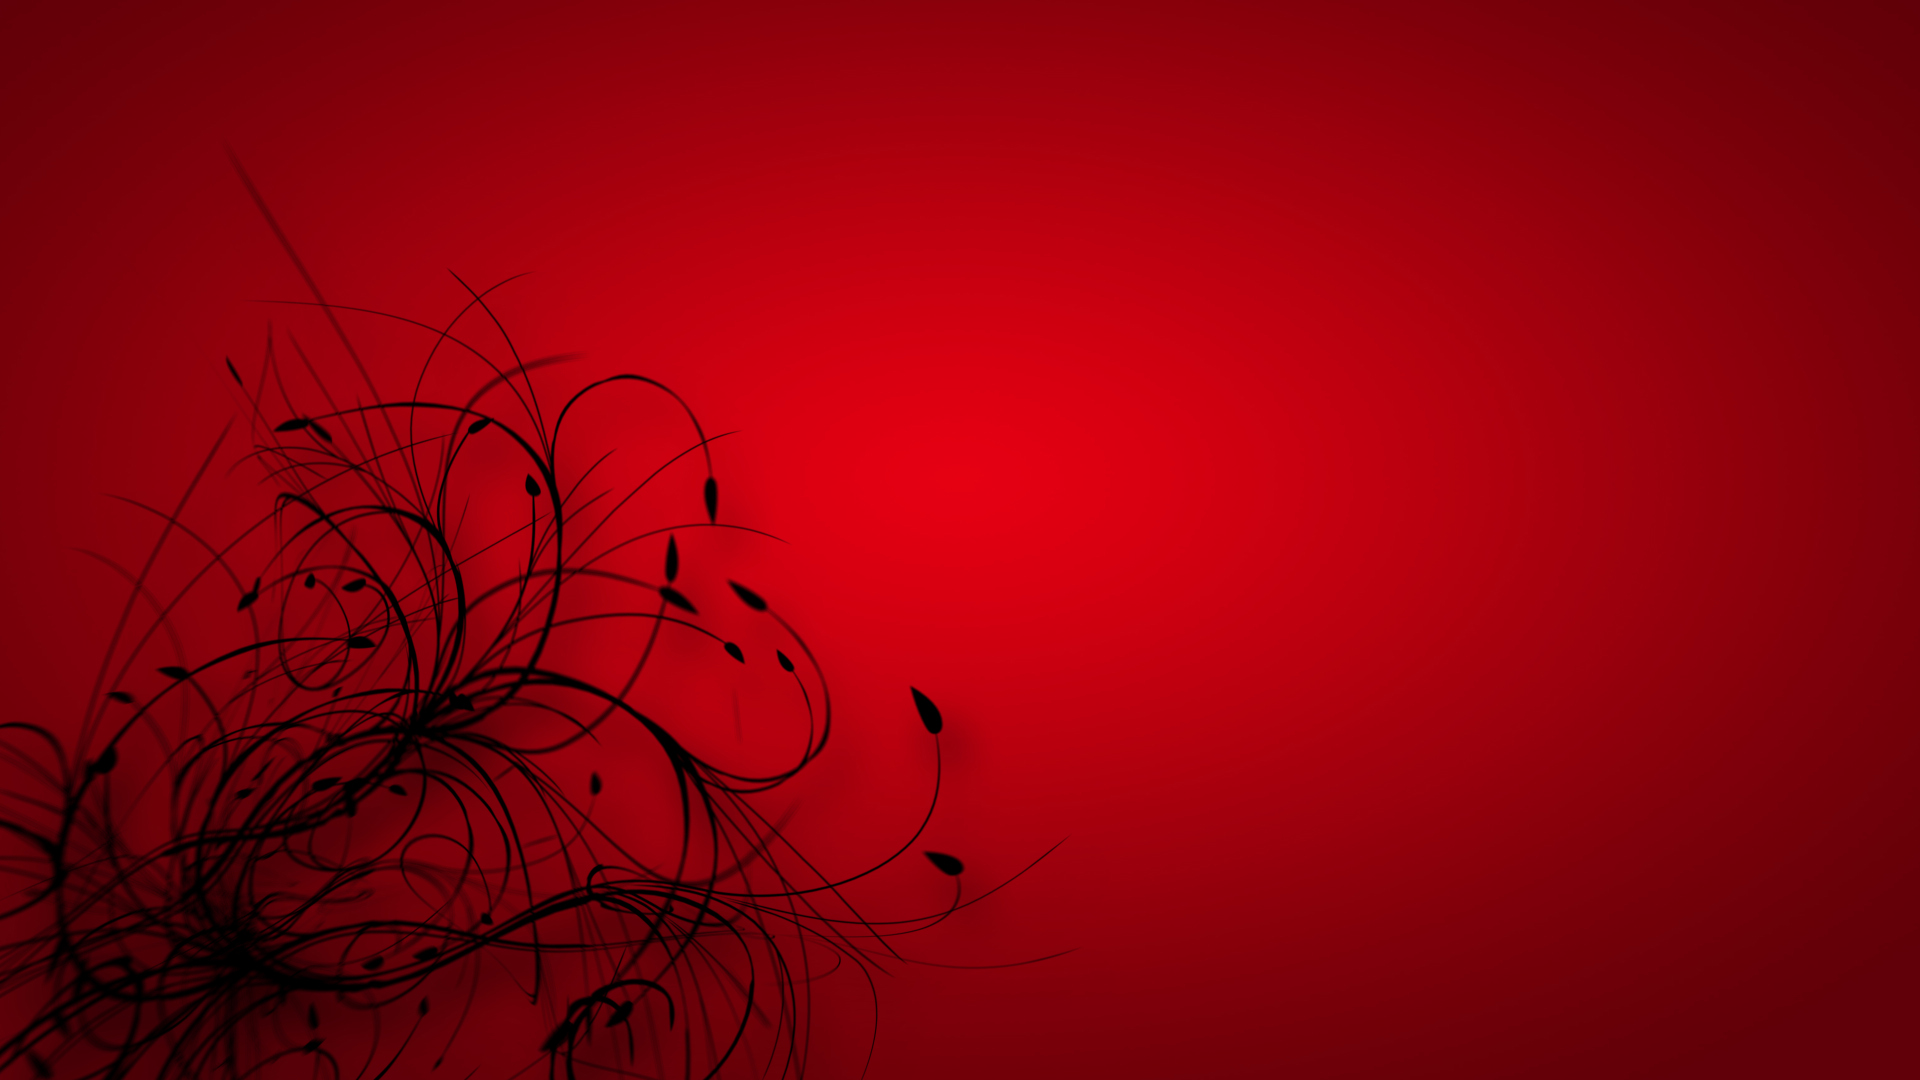 Red Wallpaper Desktop